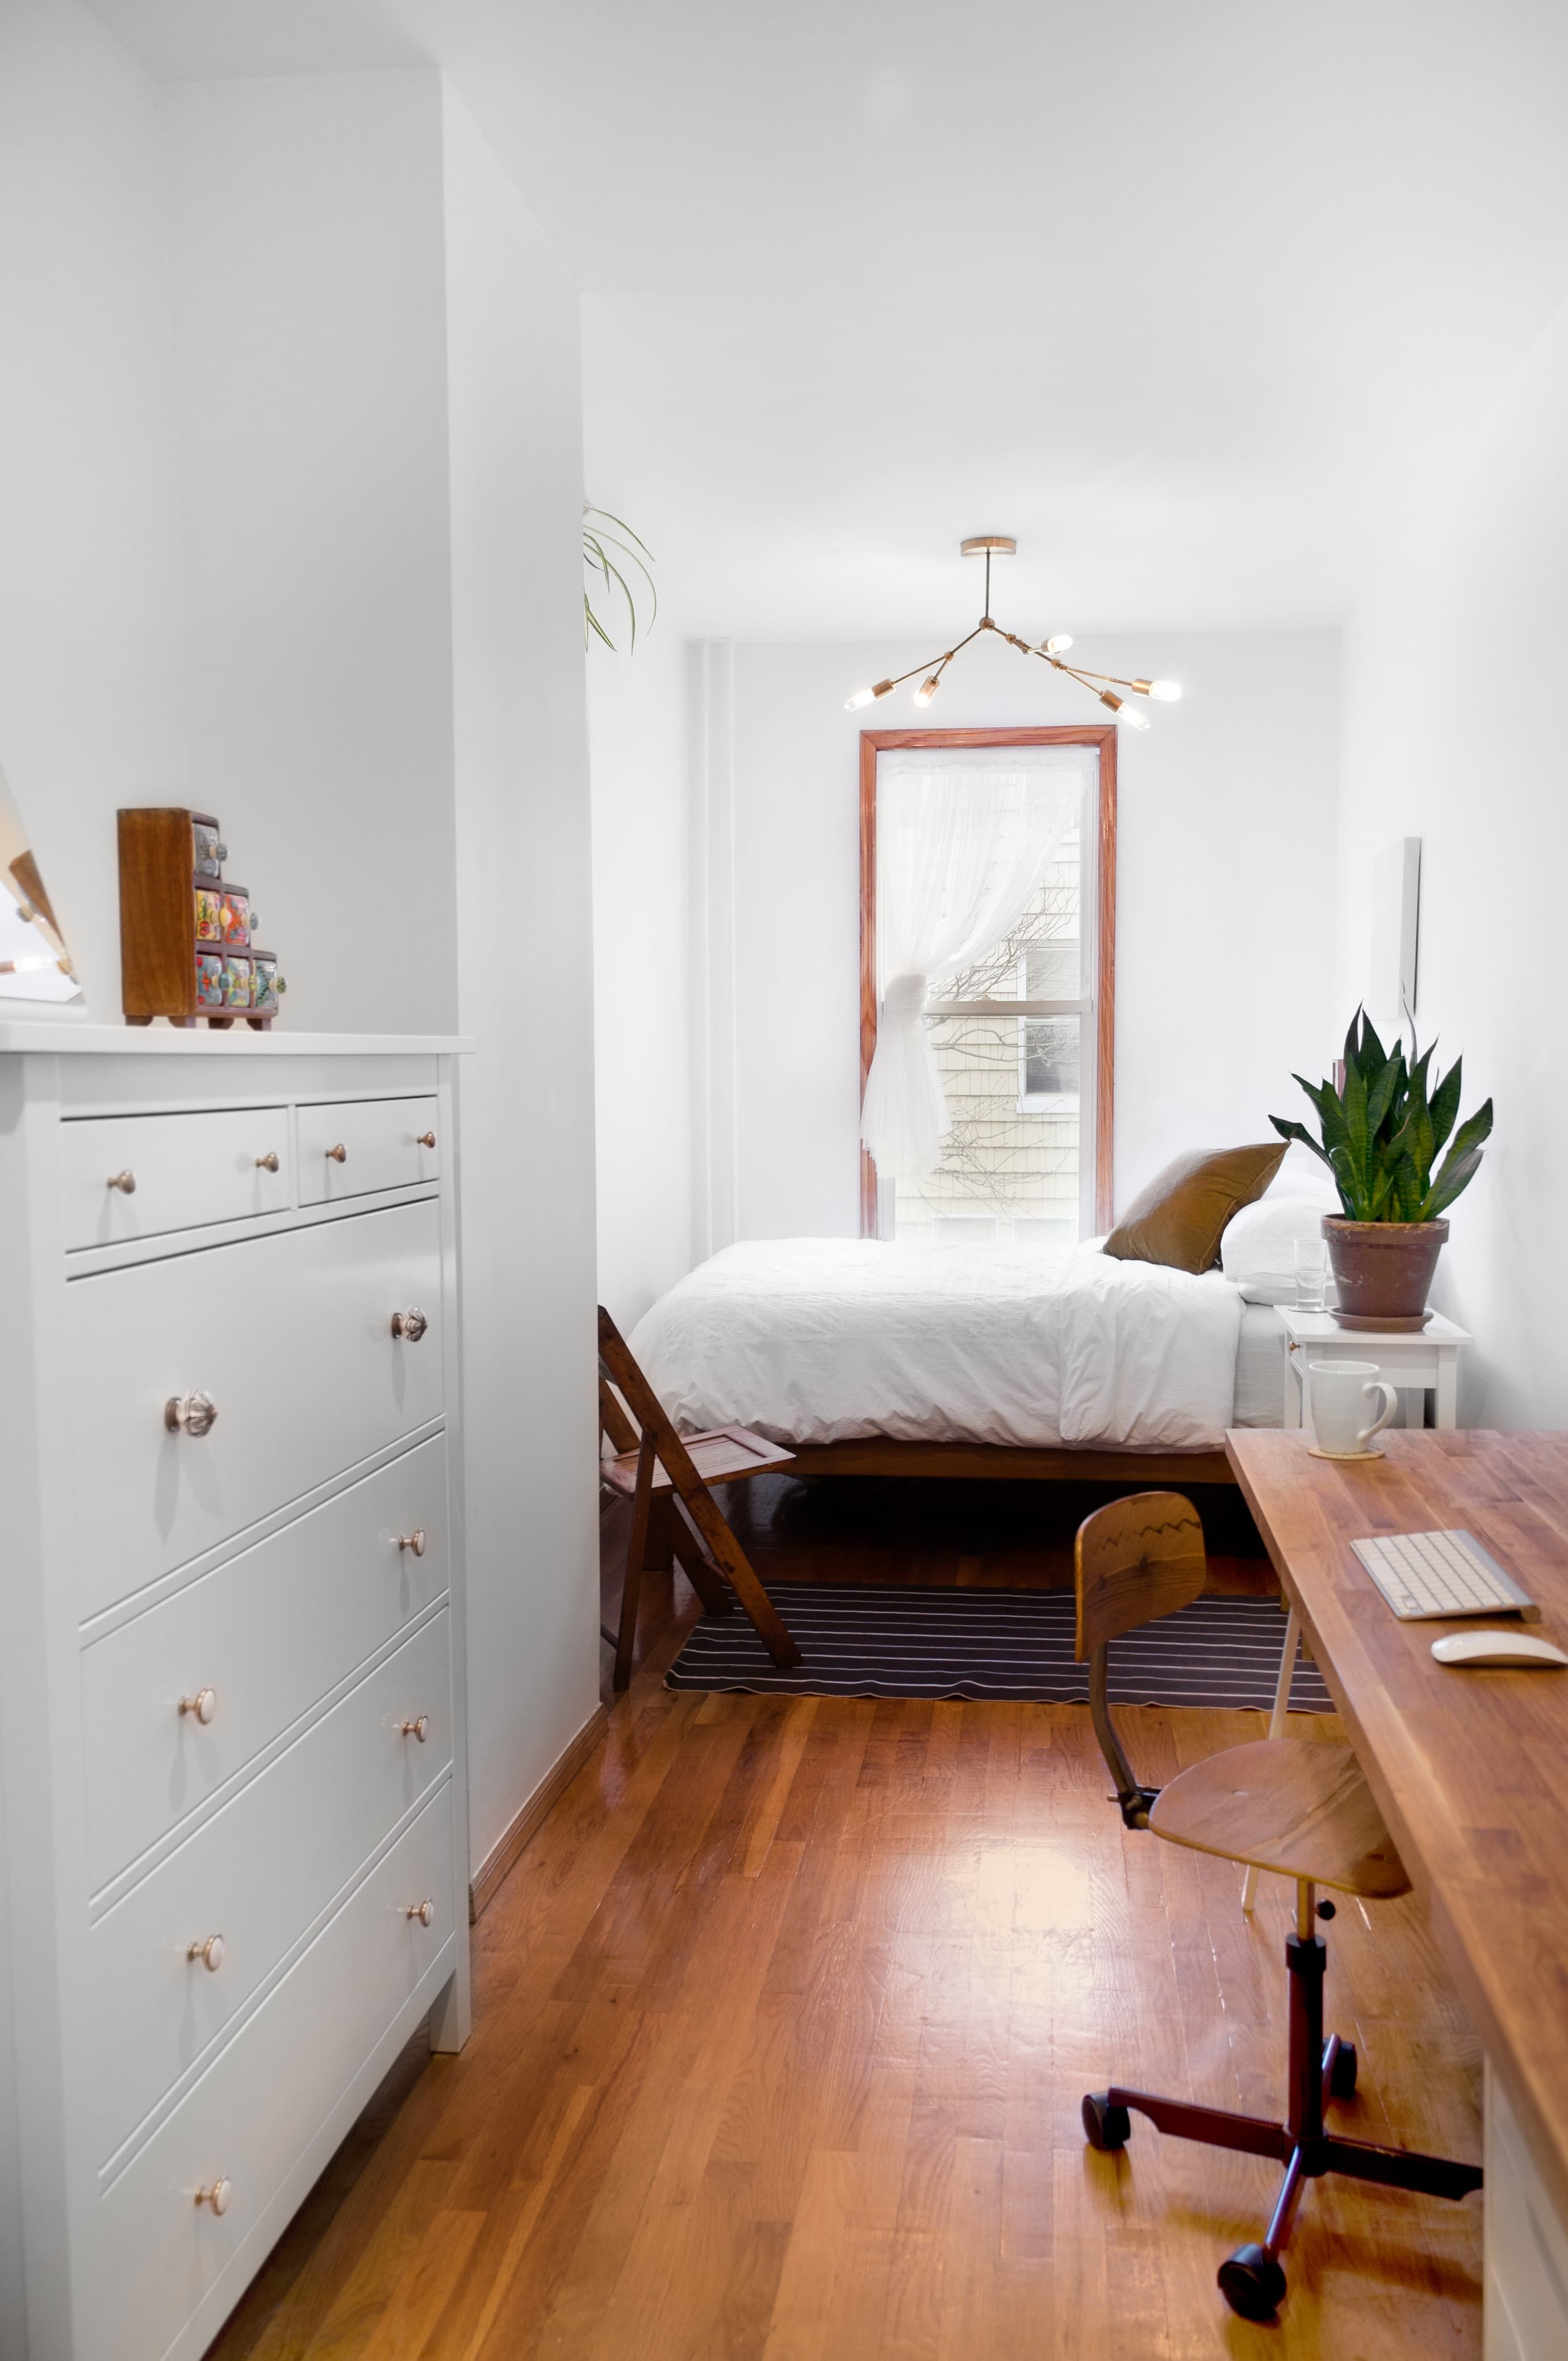 Small white apartment with bed, dresser and wooden desk. Keeping the color palette simple ensures that your small bedroom will remain restful and calming.